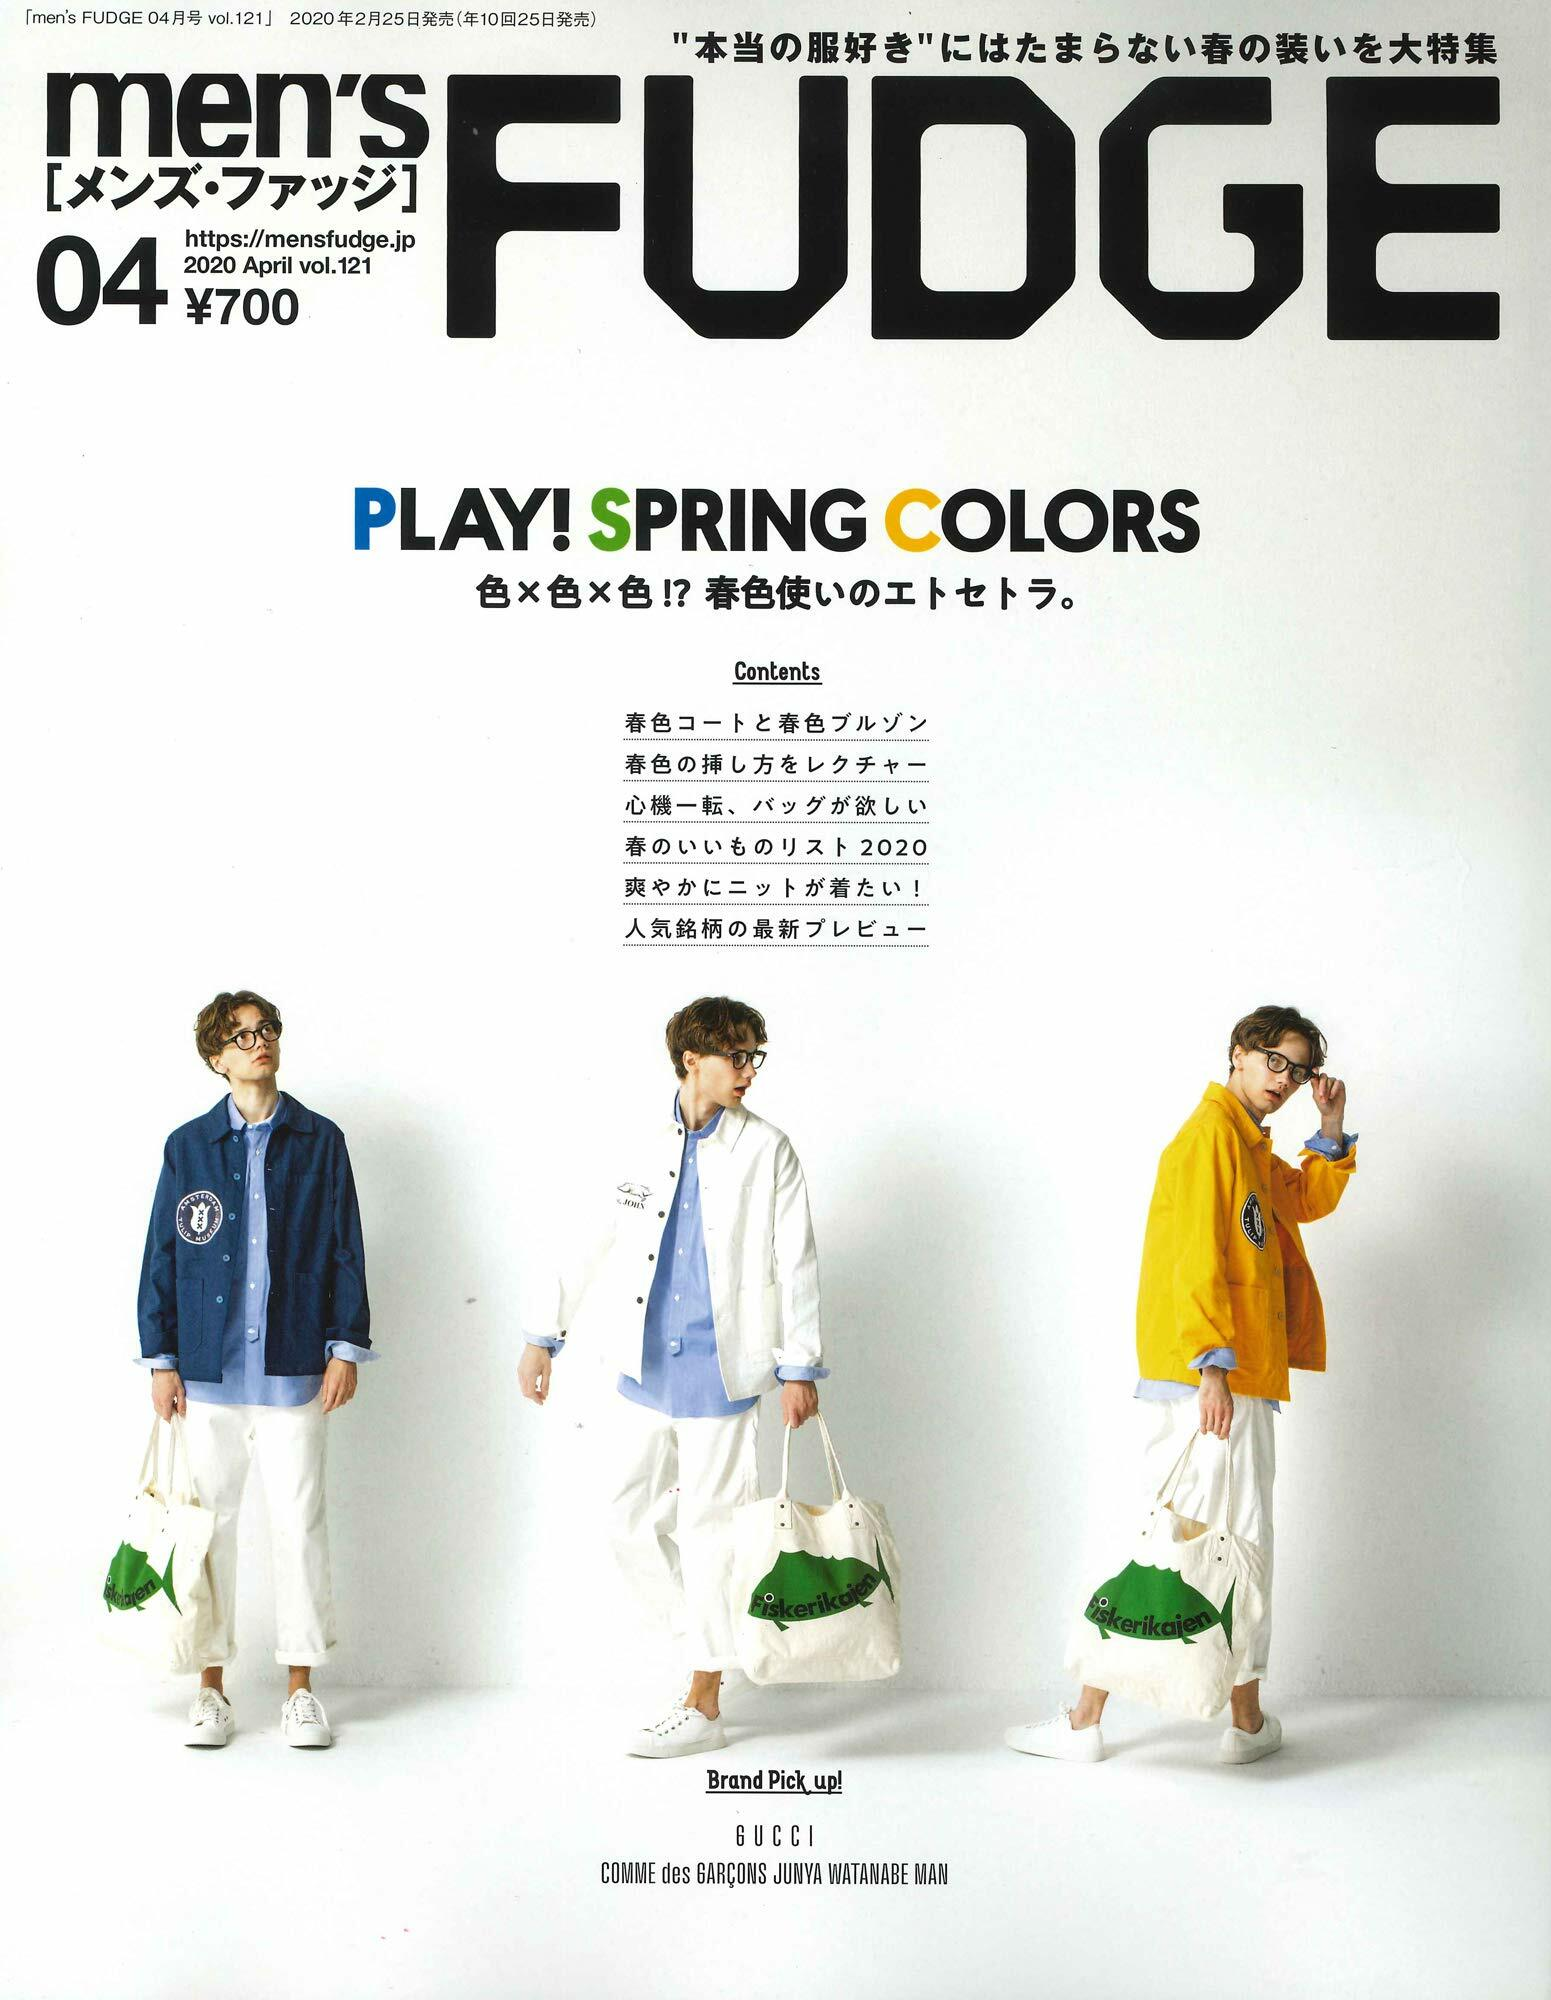 men's FUDGE 2020年 4月號